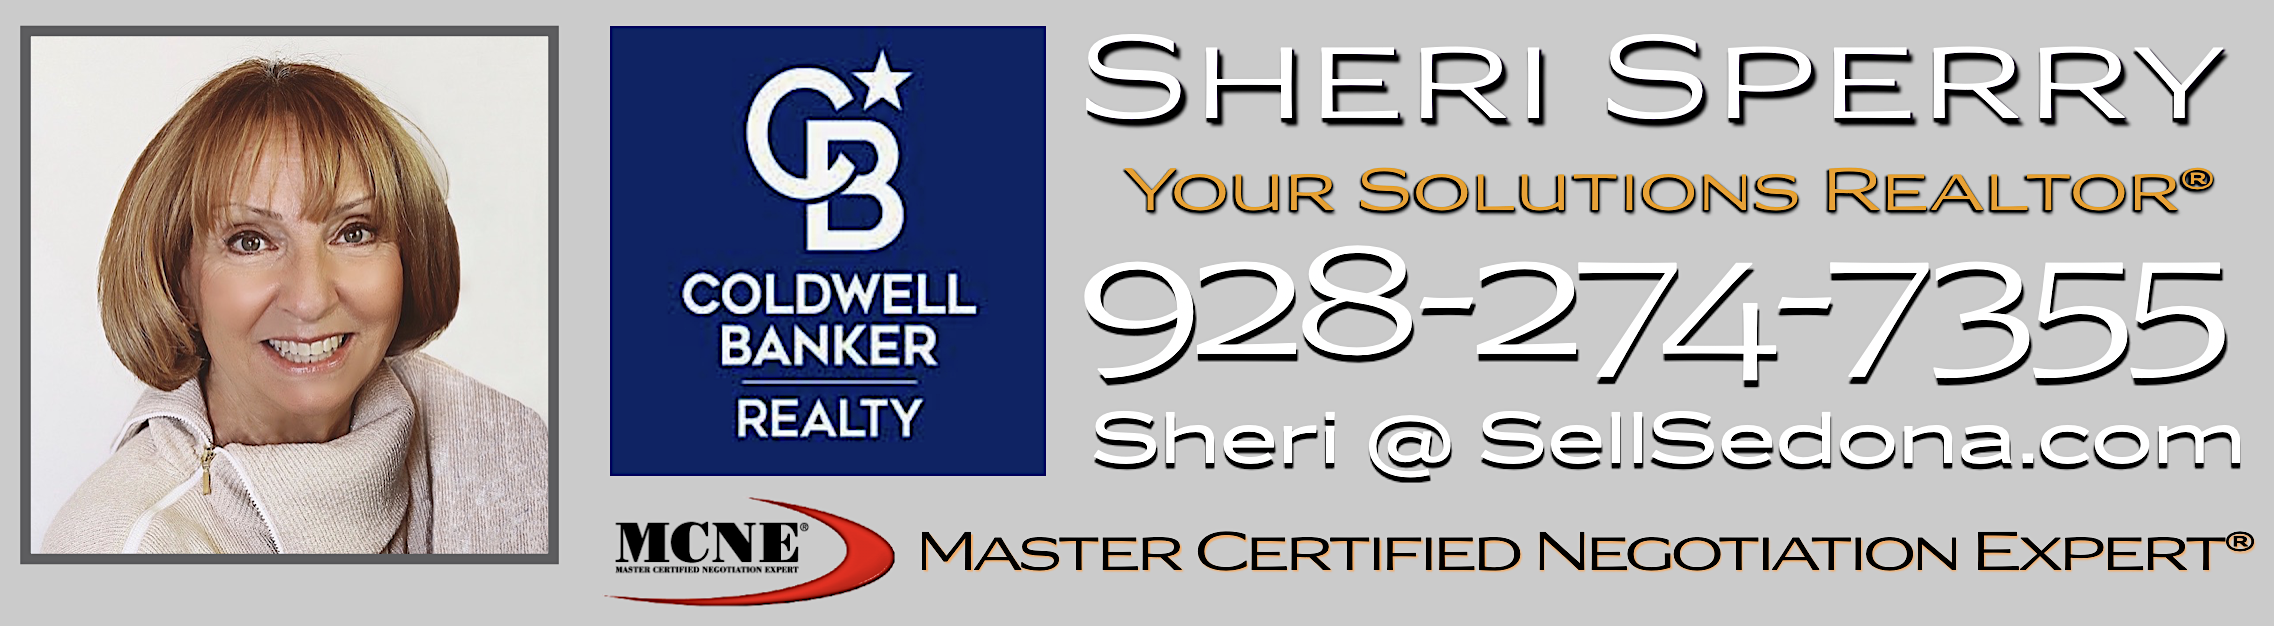 Sheri Sperry Coldwell Banker MCNE Master Certified Negotiation Expert